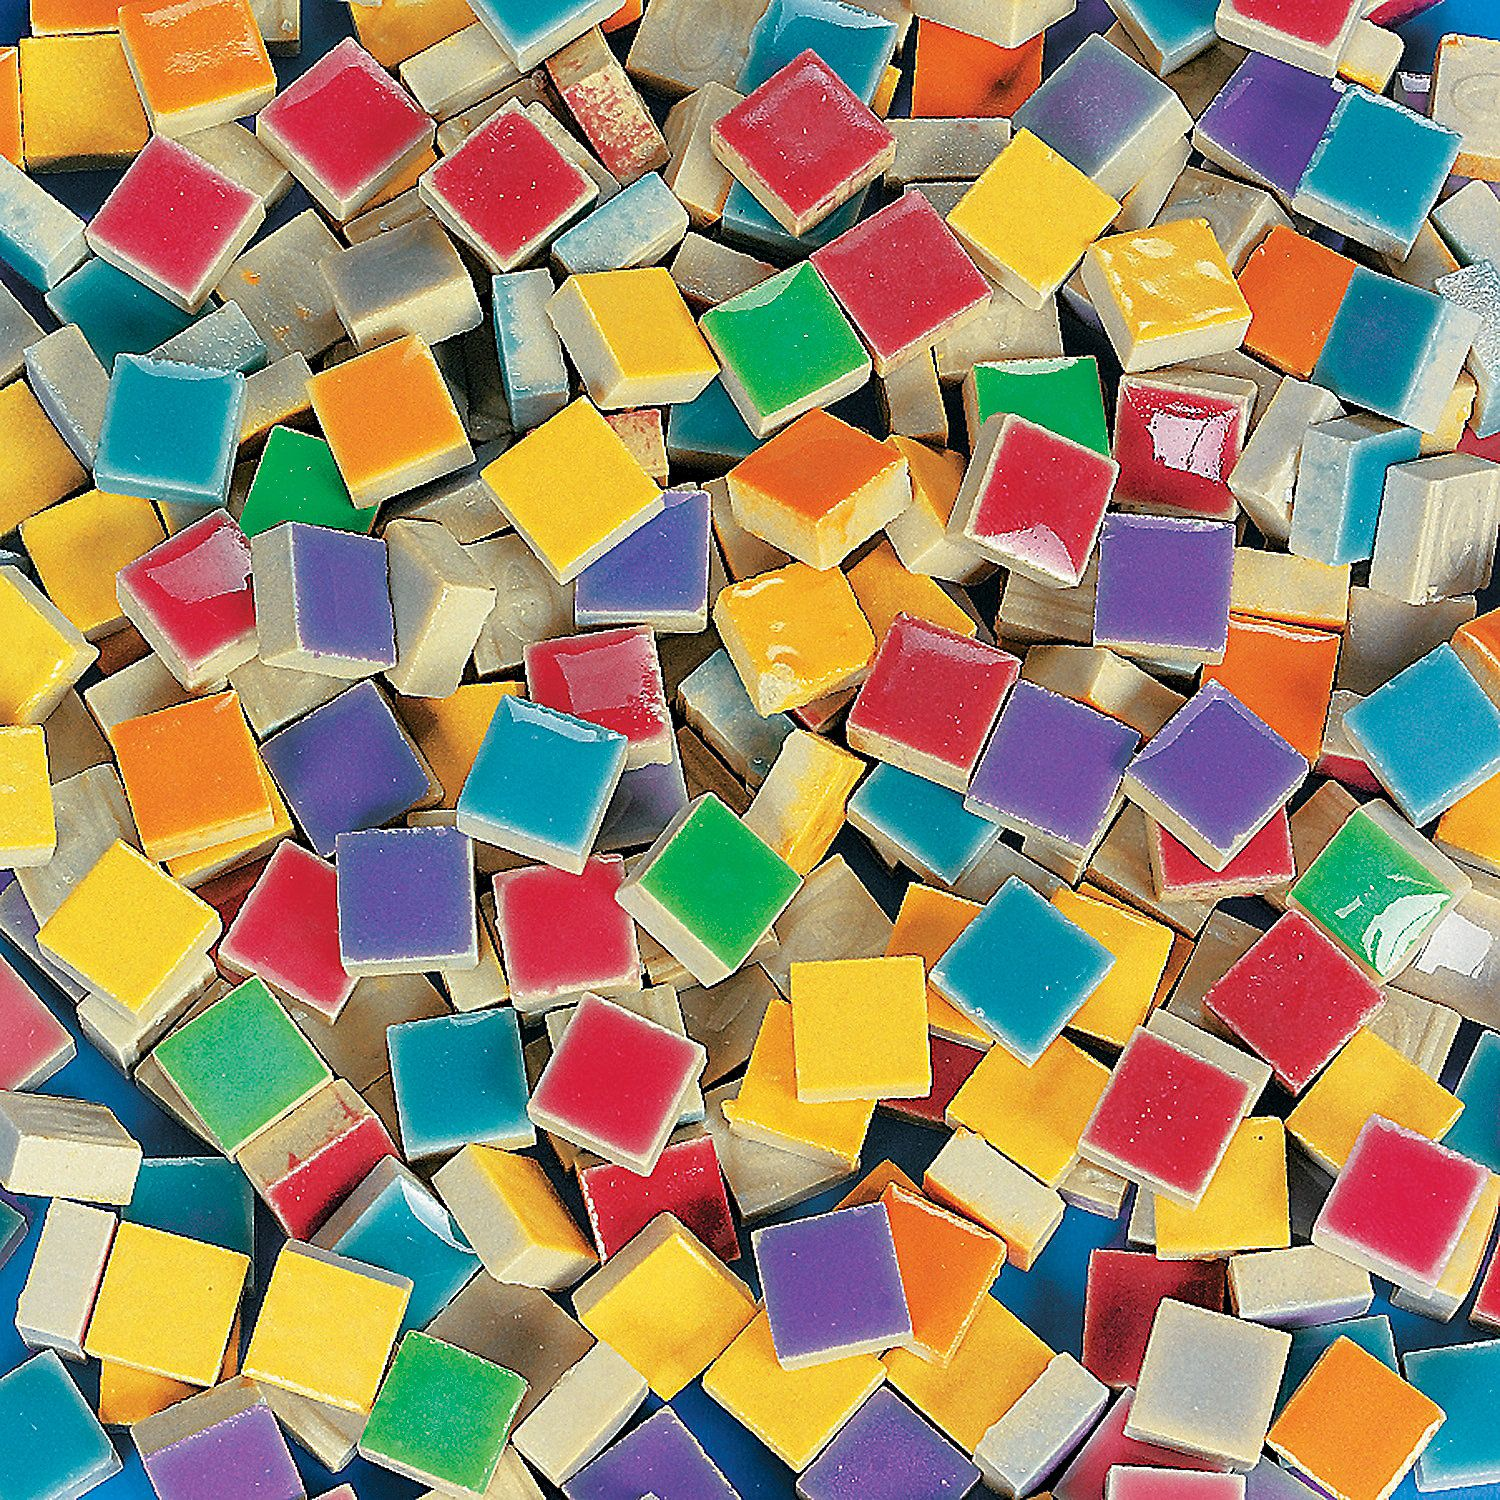 Square Mosaic Tiles Mosaic Tiles Mosaic Mosaic Patterns